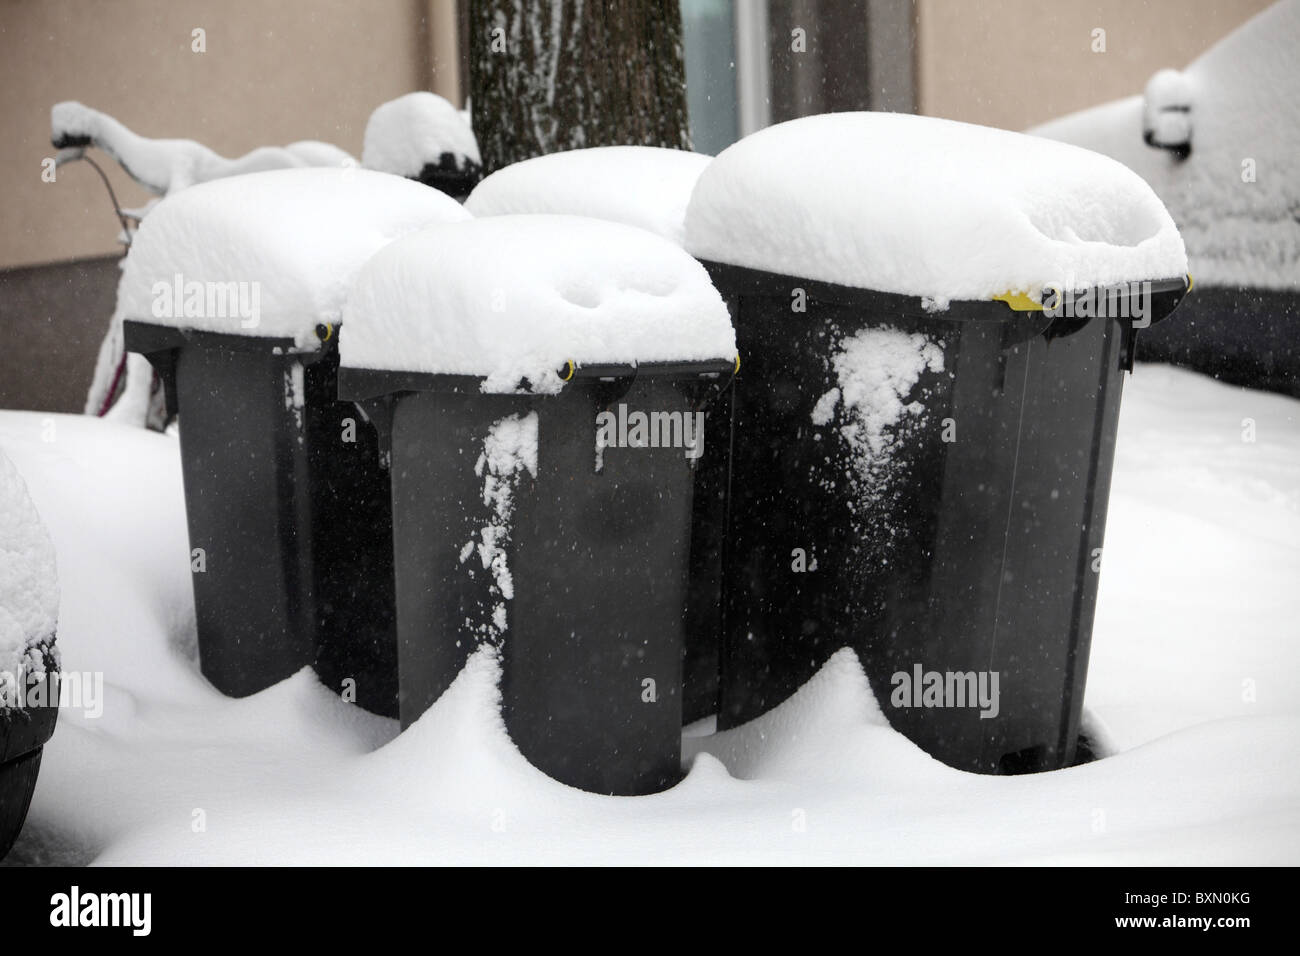 Snow covered garbage bins, full, waiting for rubbish collection. Stock Photo